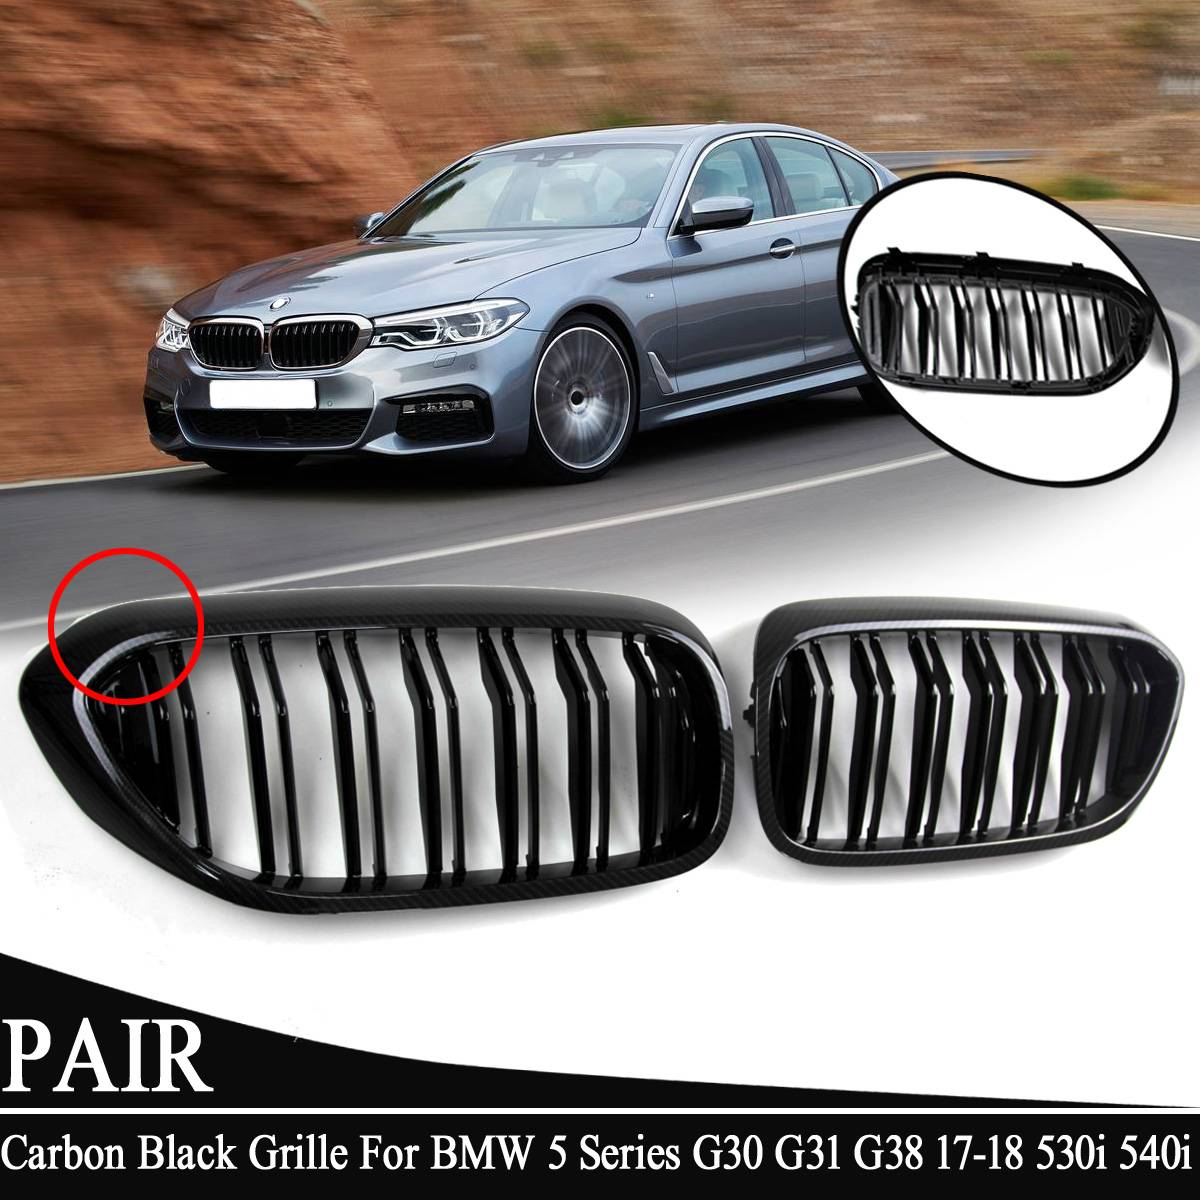 Front Bumper Grill For <font><b>BMW</b></font> 5Series <font><b>G30</b></font> G31 G38 530i <font><b>540i</b></font> 2017-2018 ABS Dual Line Carbon Black Replacement Front Kidney Grille image